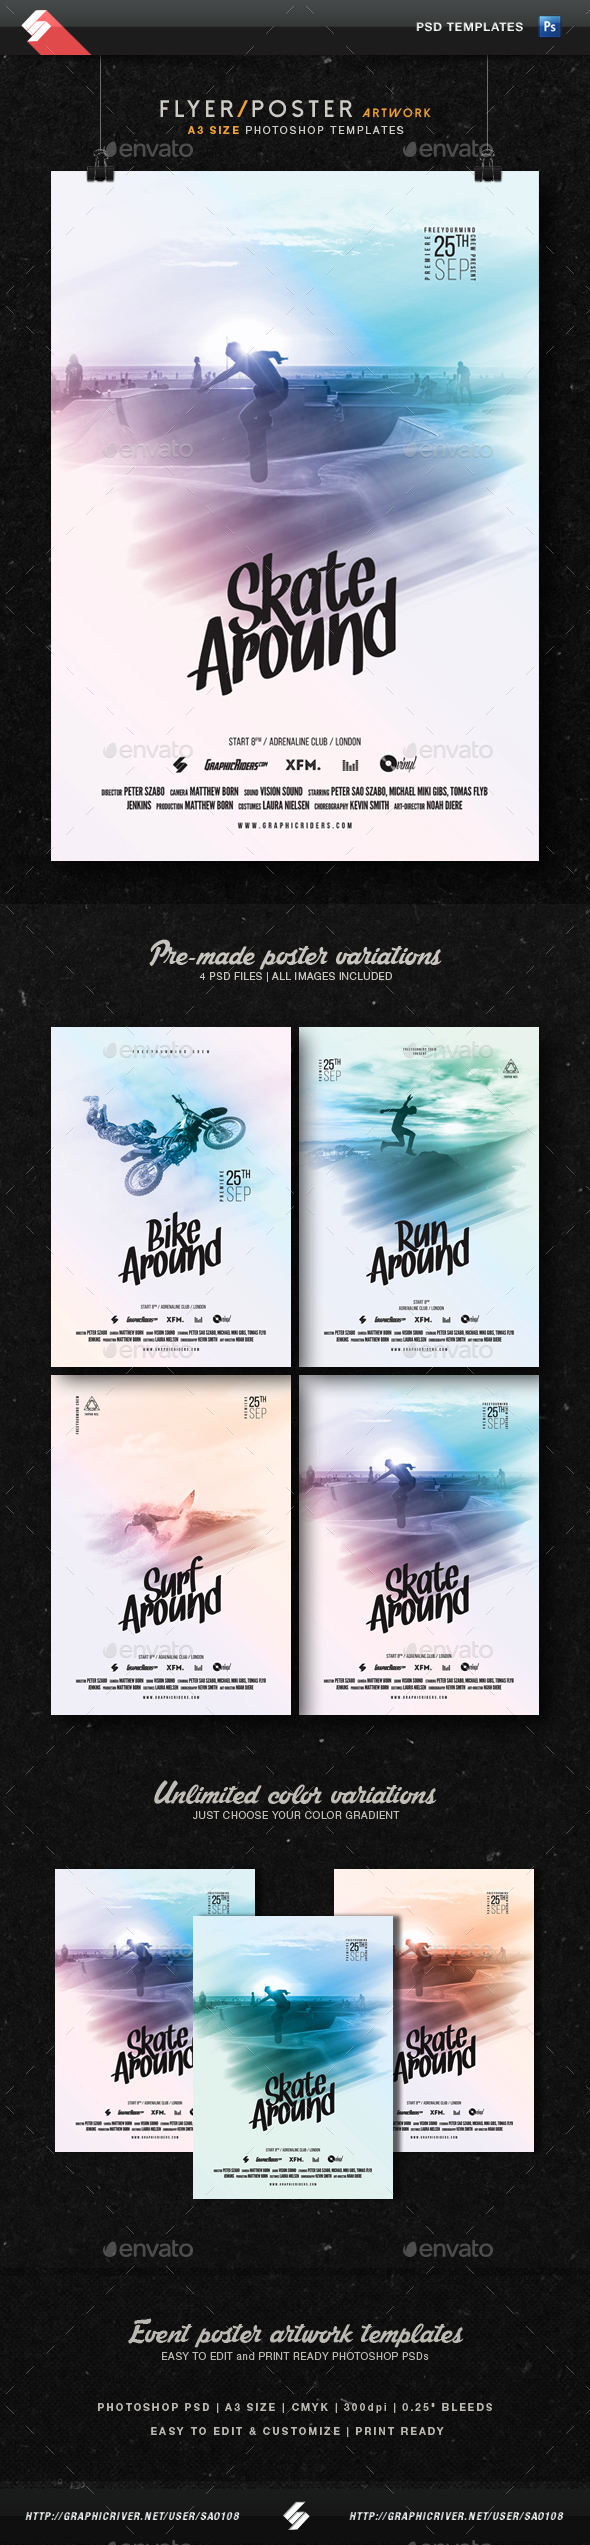 Active Life - Movie, Event Flyer Template A3 - Sports Events